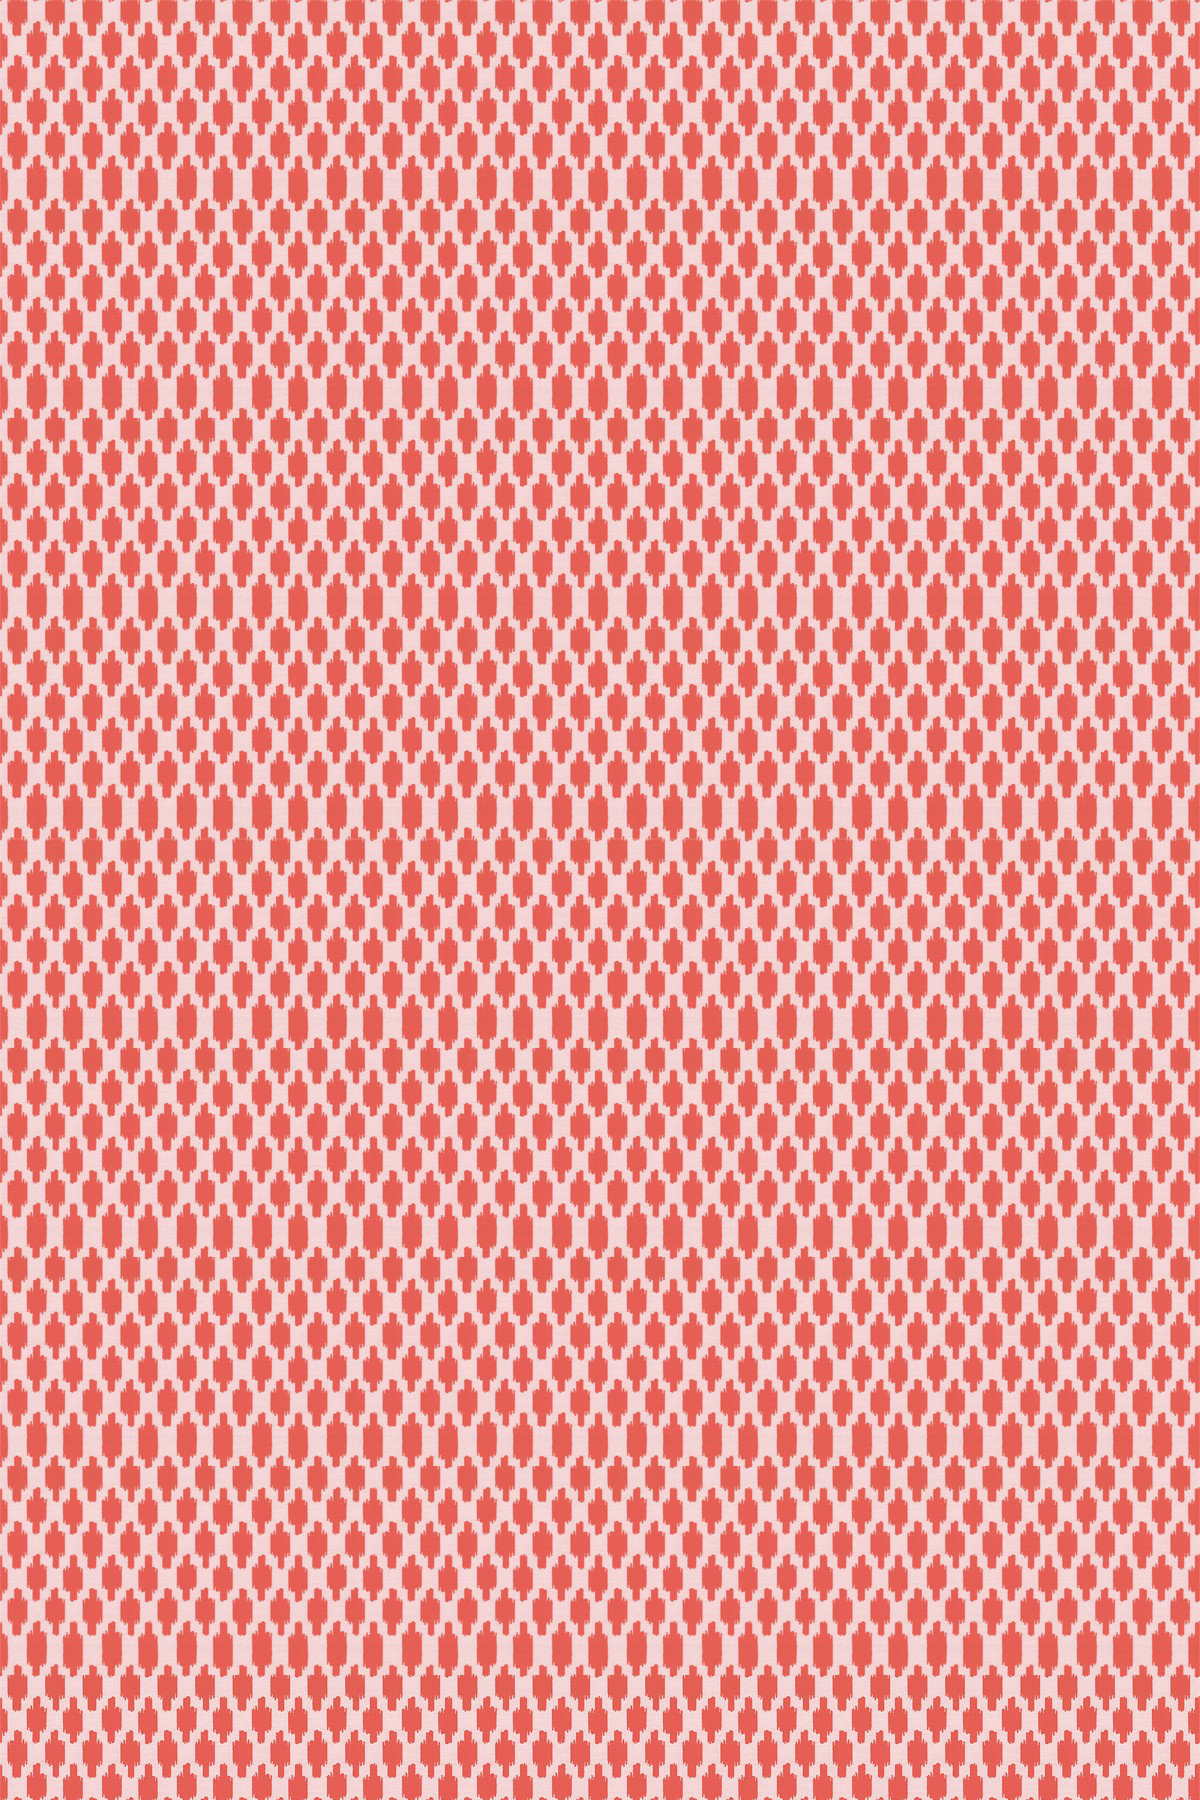 Image of Thibaut Fabric Troy, W724324